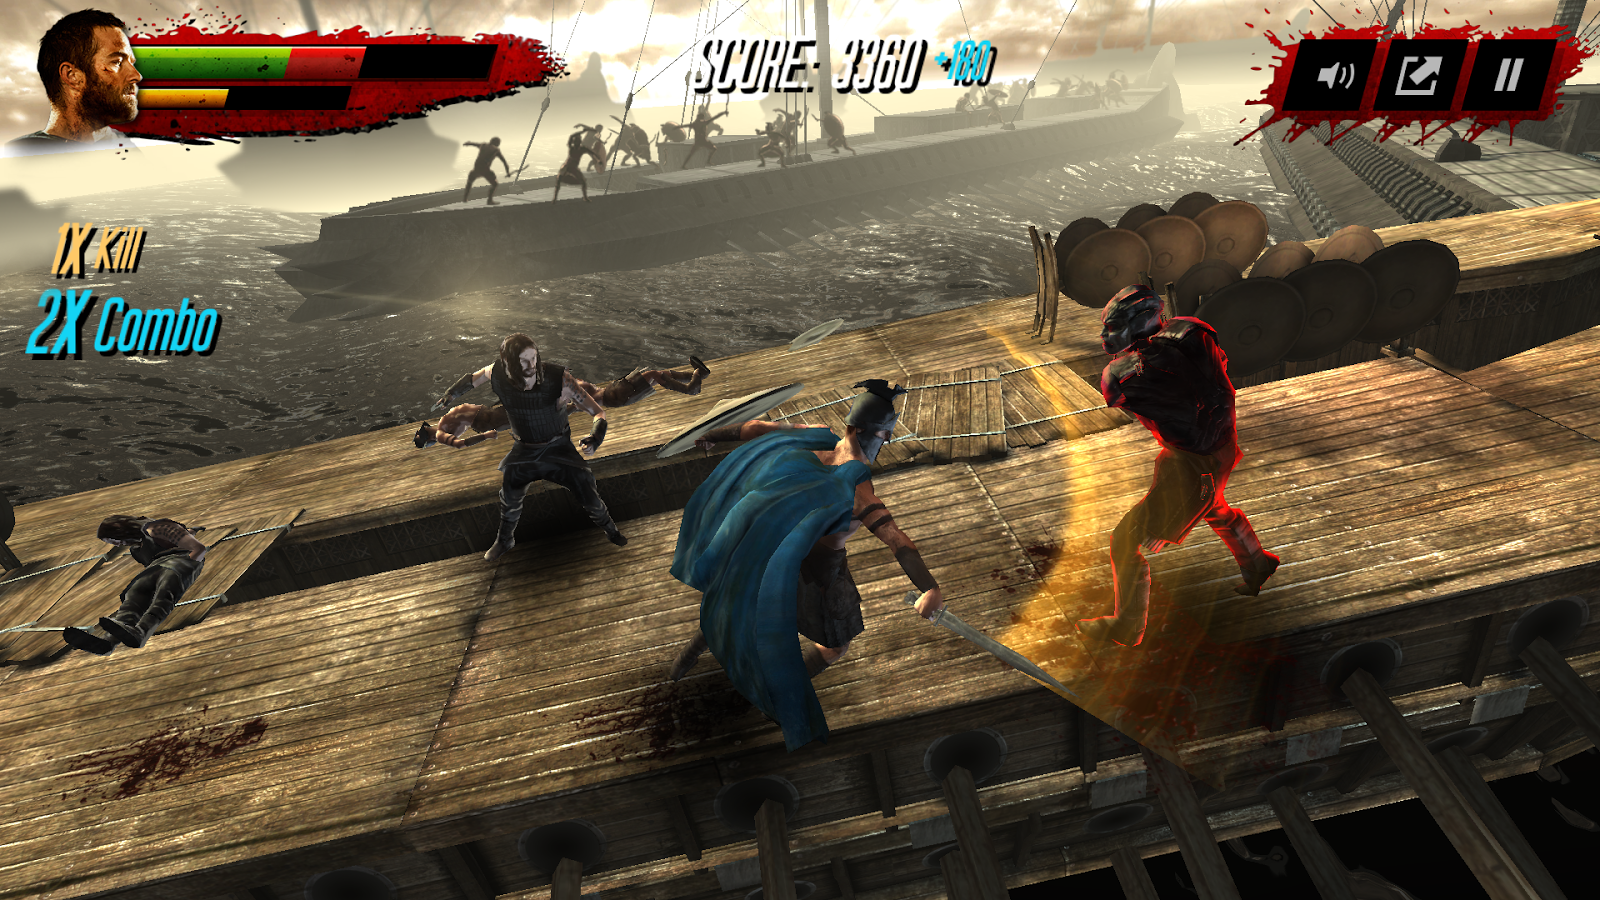 download-game-300-seize-your-glory-free-download-3